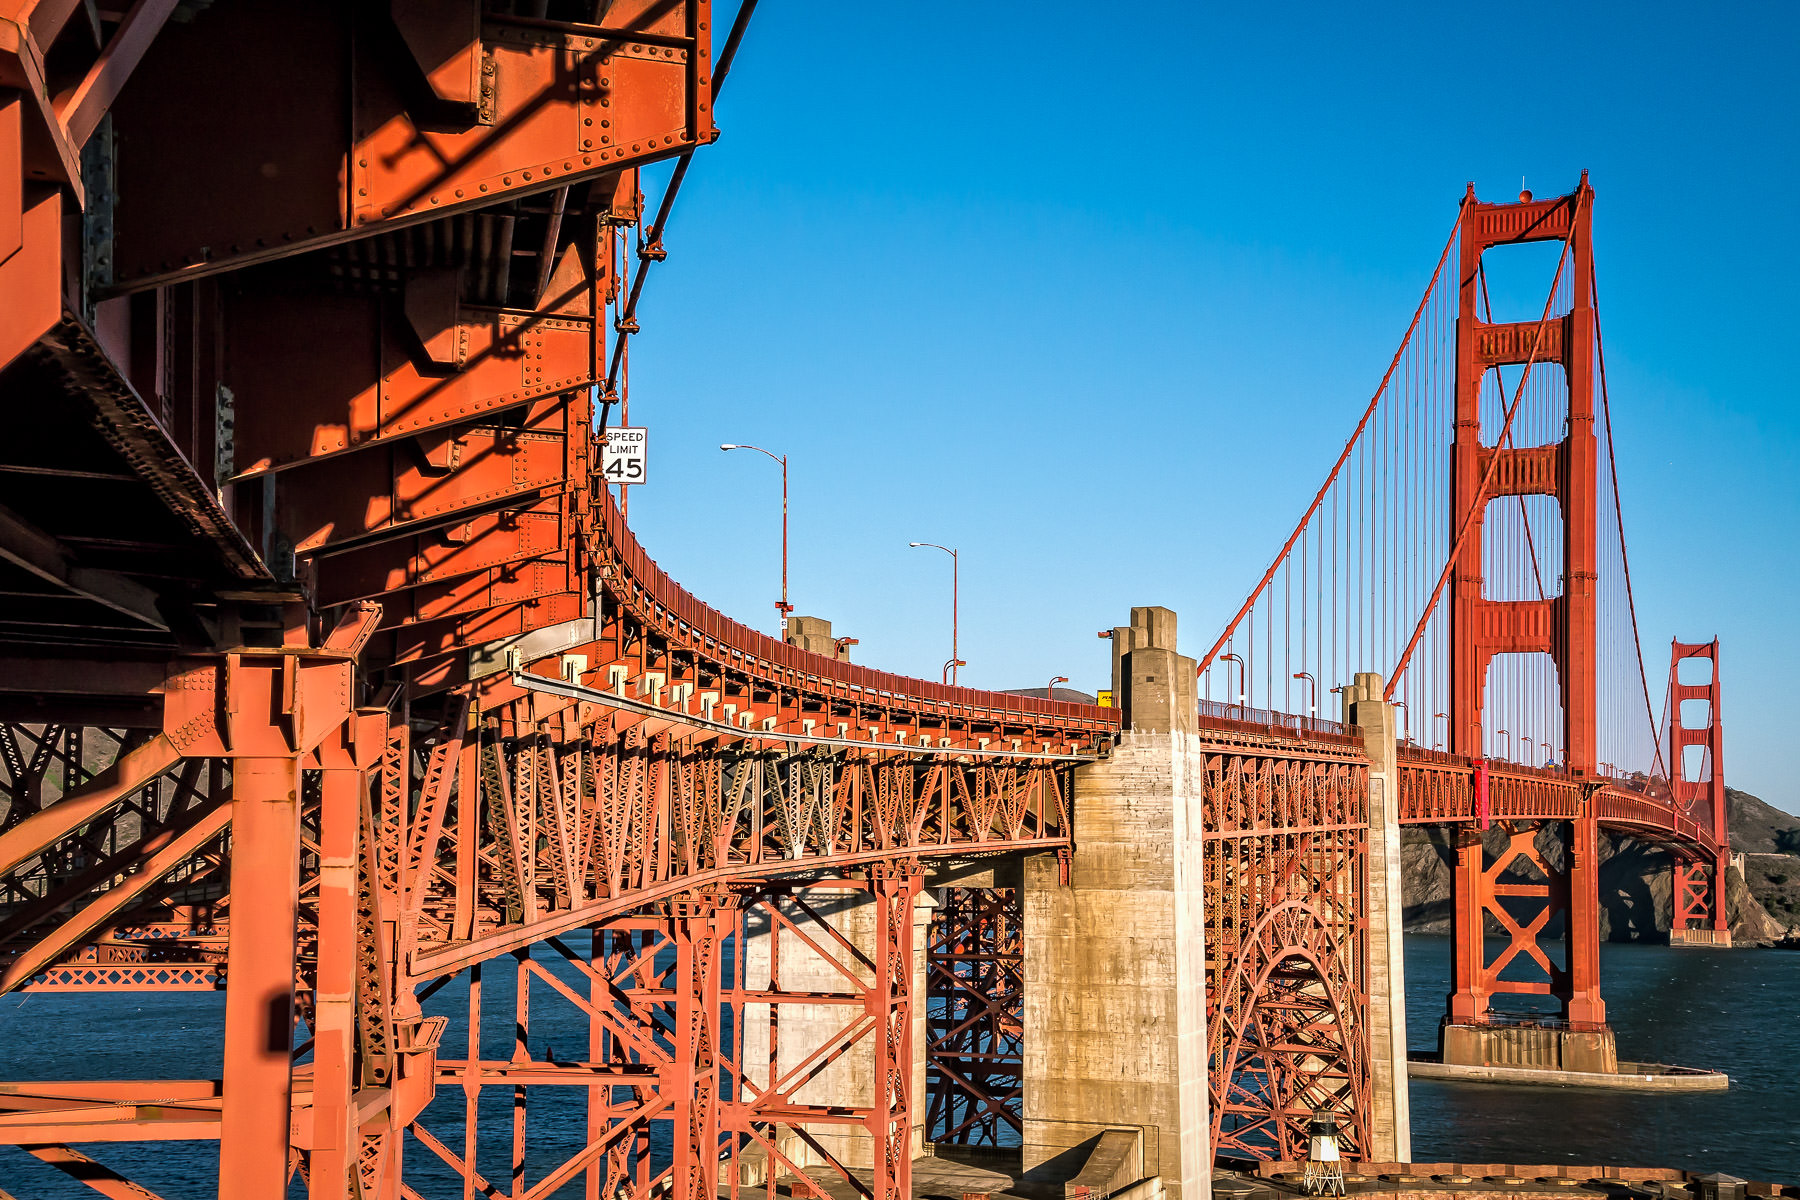 The iconic Golden Gate Bridge curves into the distance over the entrance to San Francisco Bay.